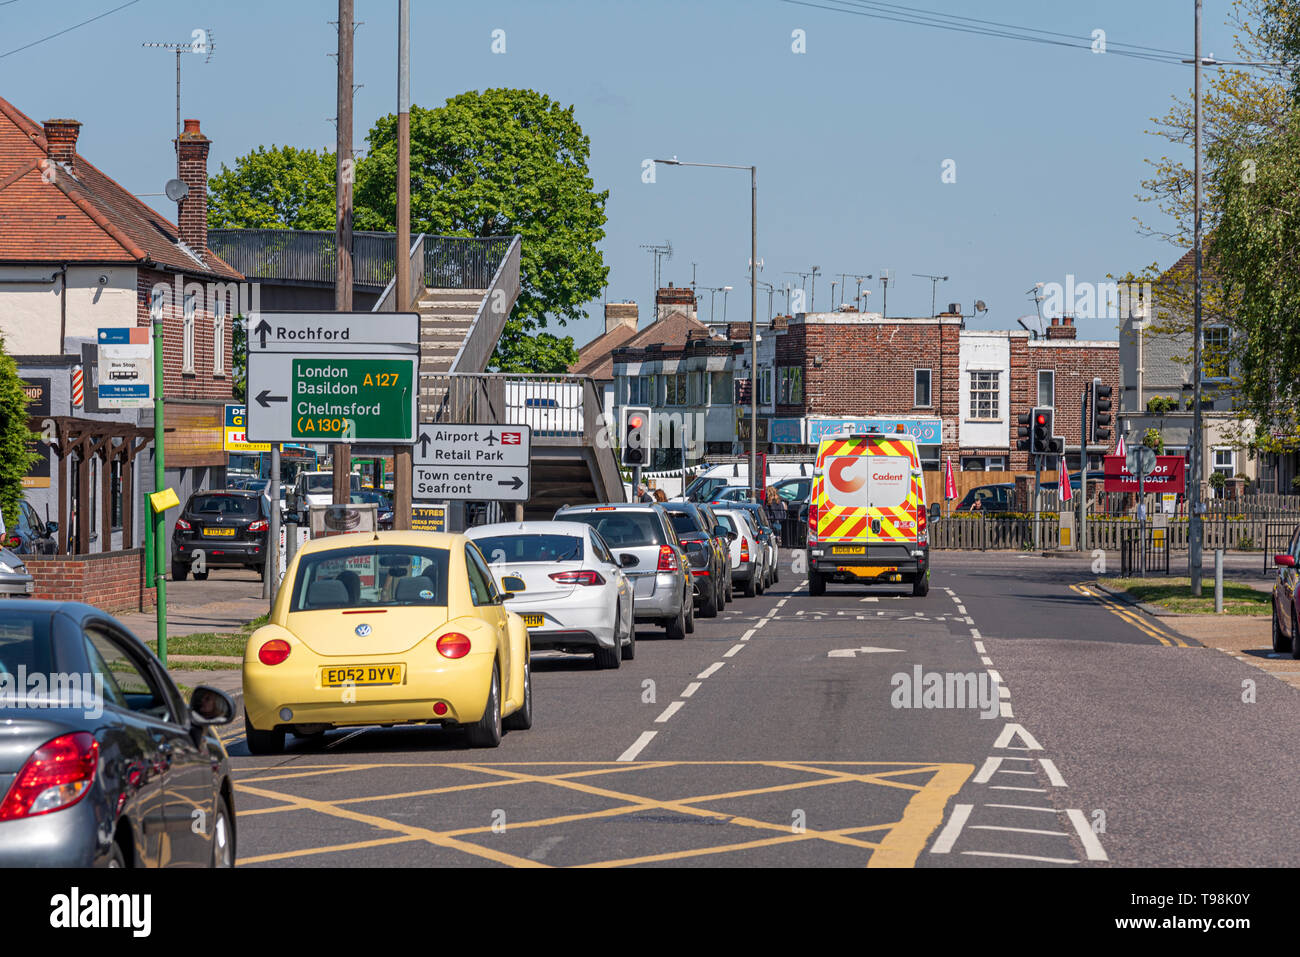 The Bell road junction of the A127 Prince Avenue with Hobleythick Lane. Queue of traffic. Cars. Vehicles. Lanes and signs. Space for copy - Stock Image